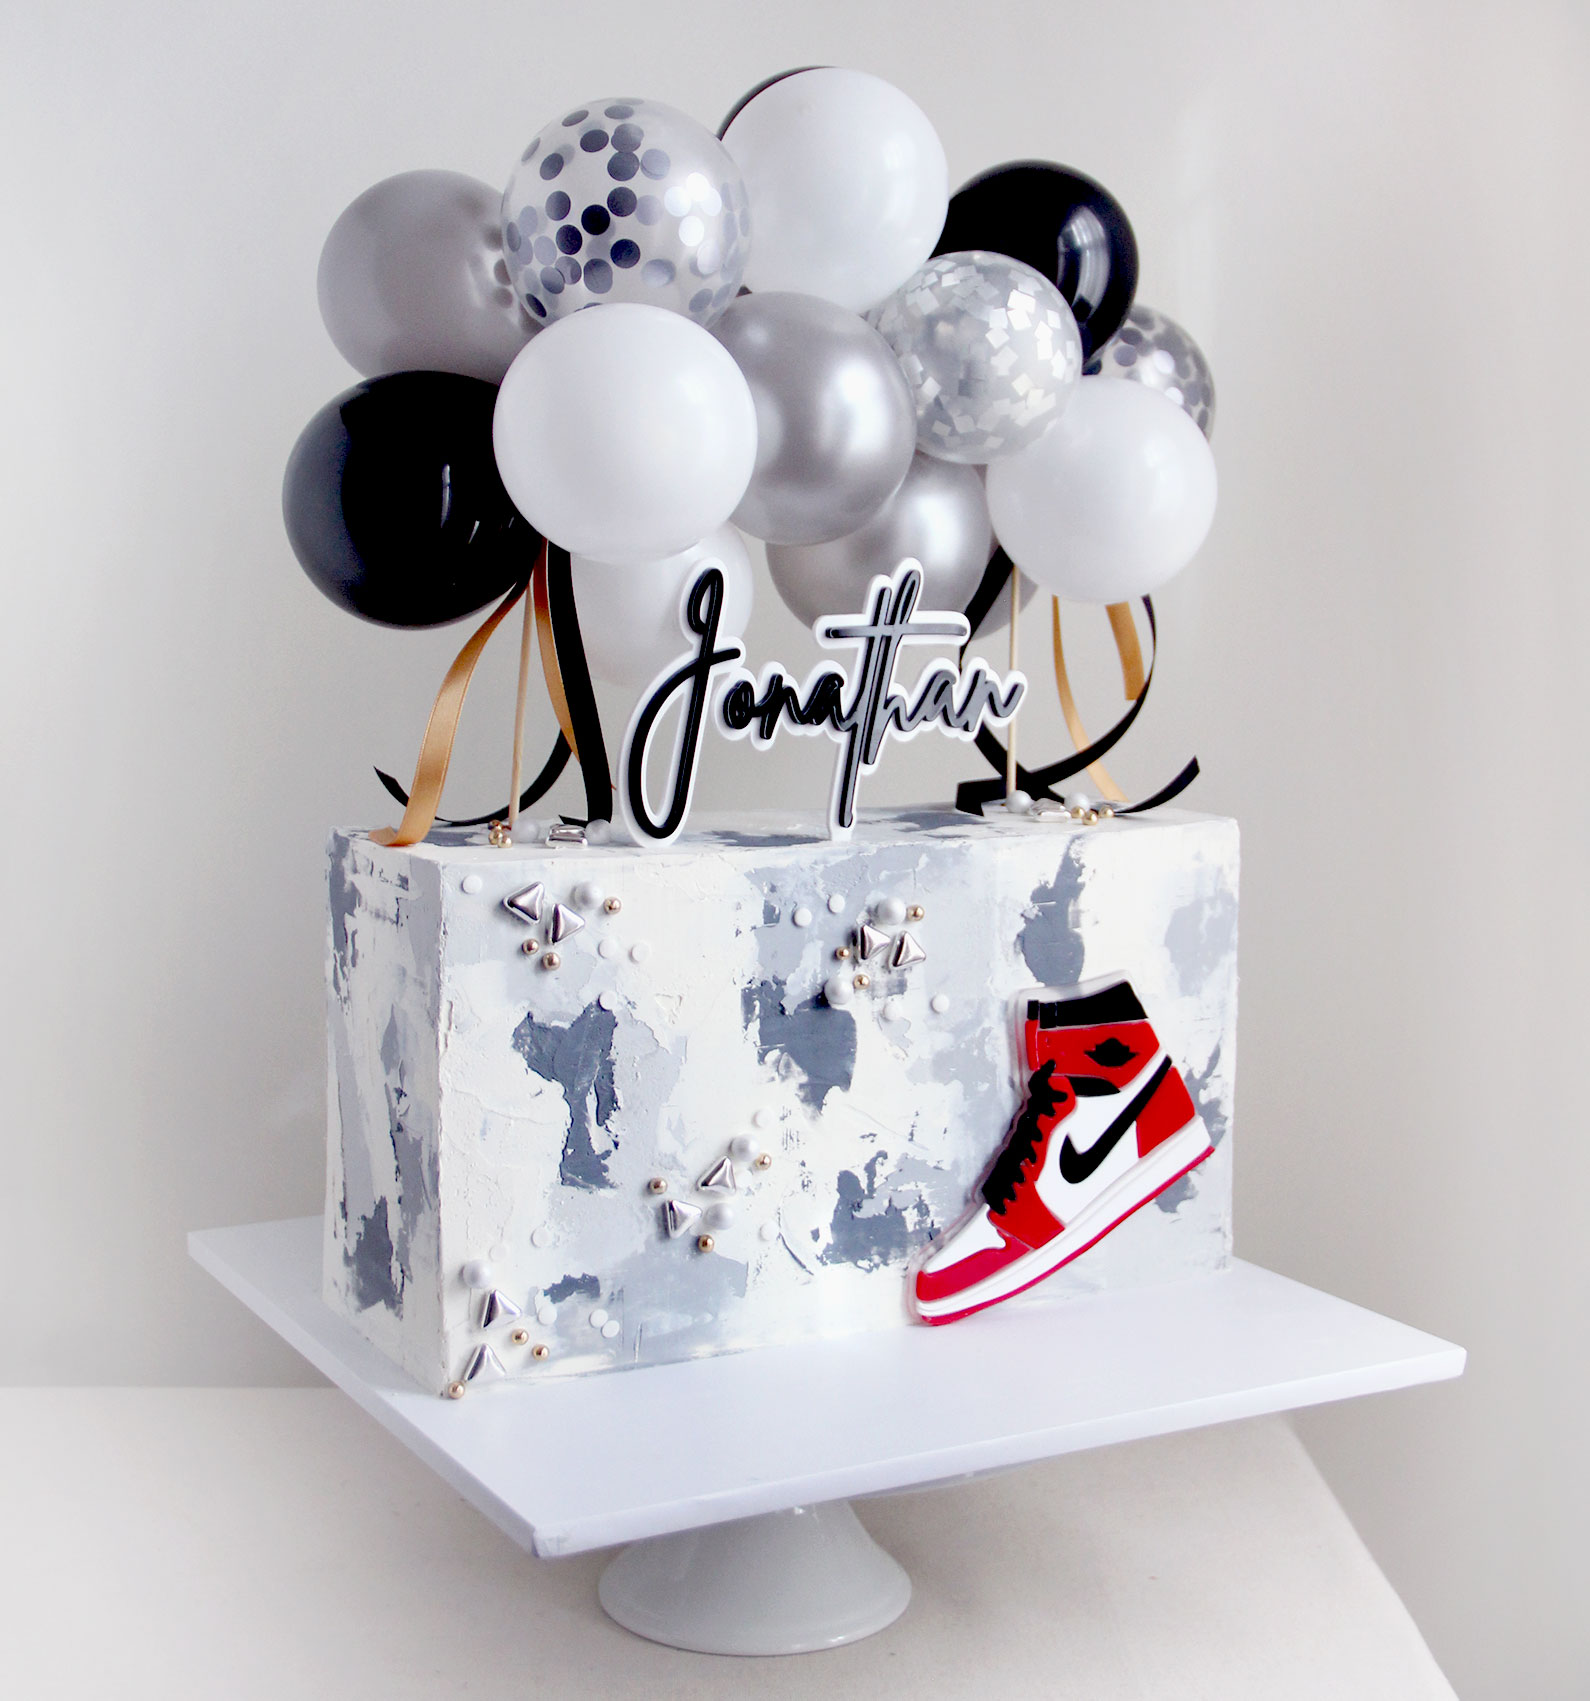 Watercolour Grey Wall Cake with Trainers & Balloons